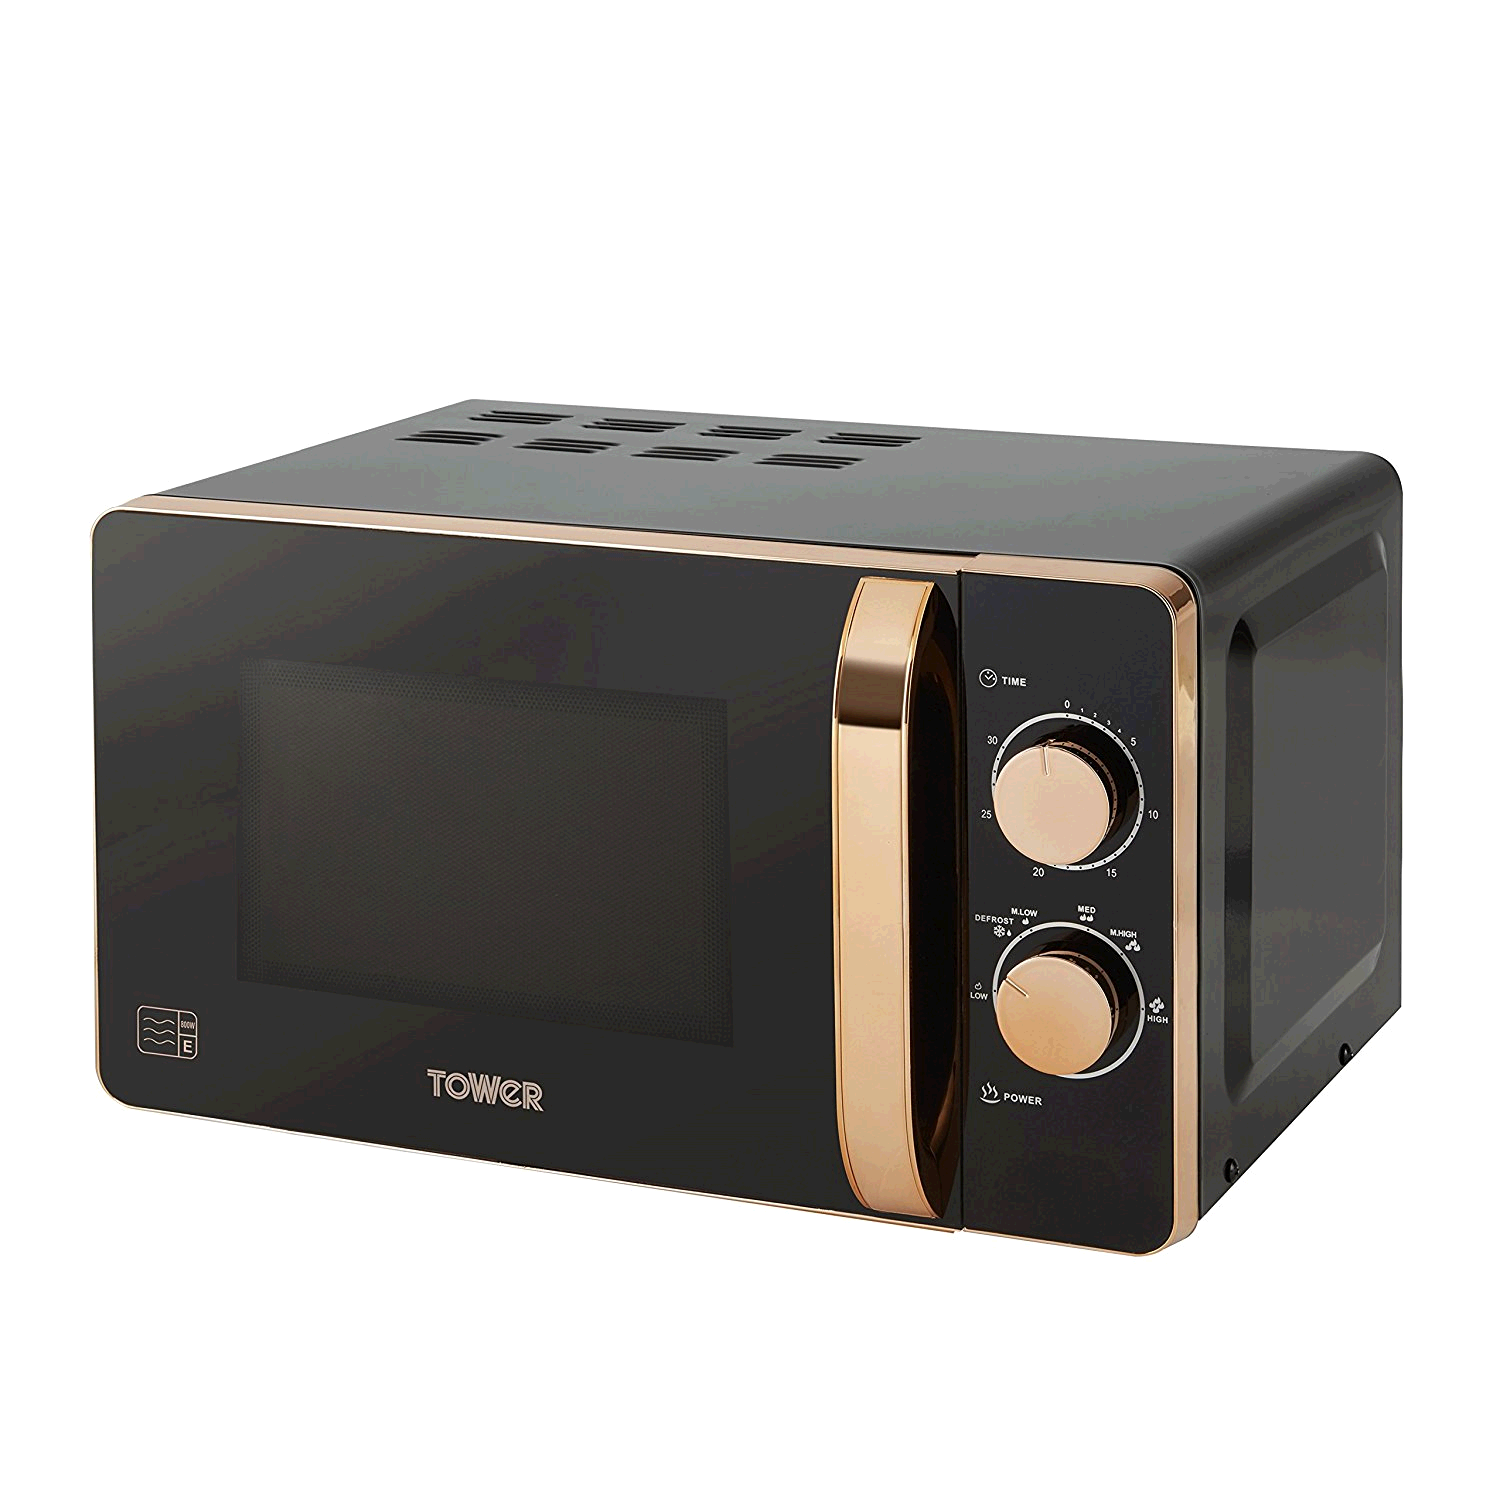 Tower20L 800w Microwave Manual Black and Rose Gold Finish